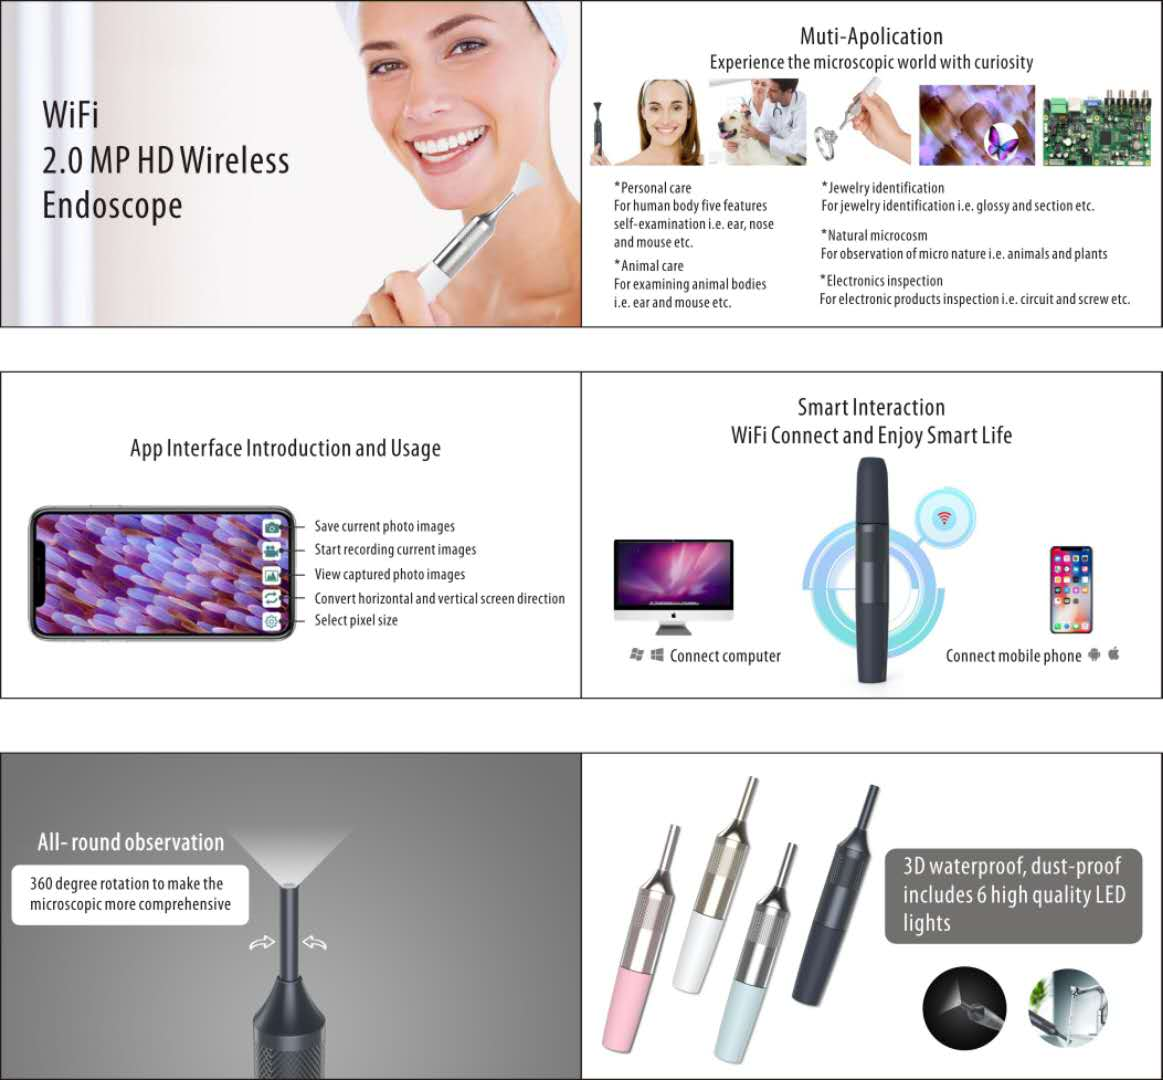 New Wifi Wireless Endoscope for Skin Inspection HD Camera for Android & IOS Smartphone iPhone Samsung Tablet Really Handy